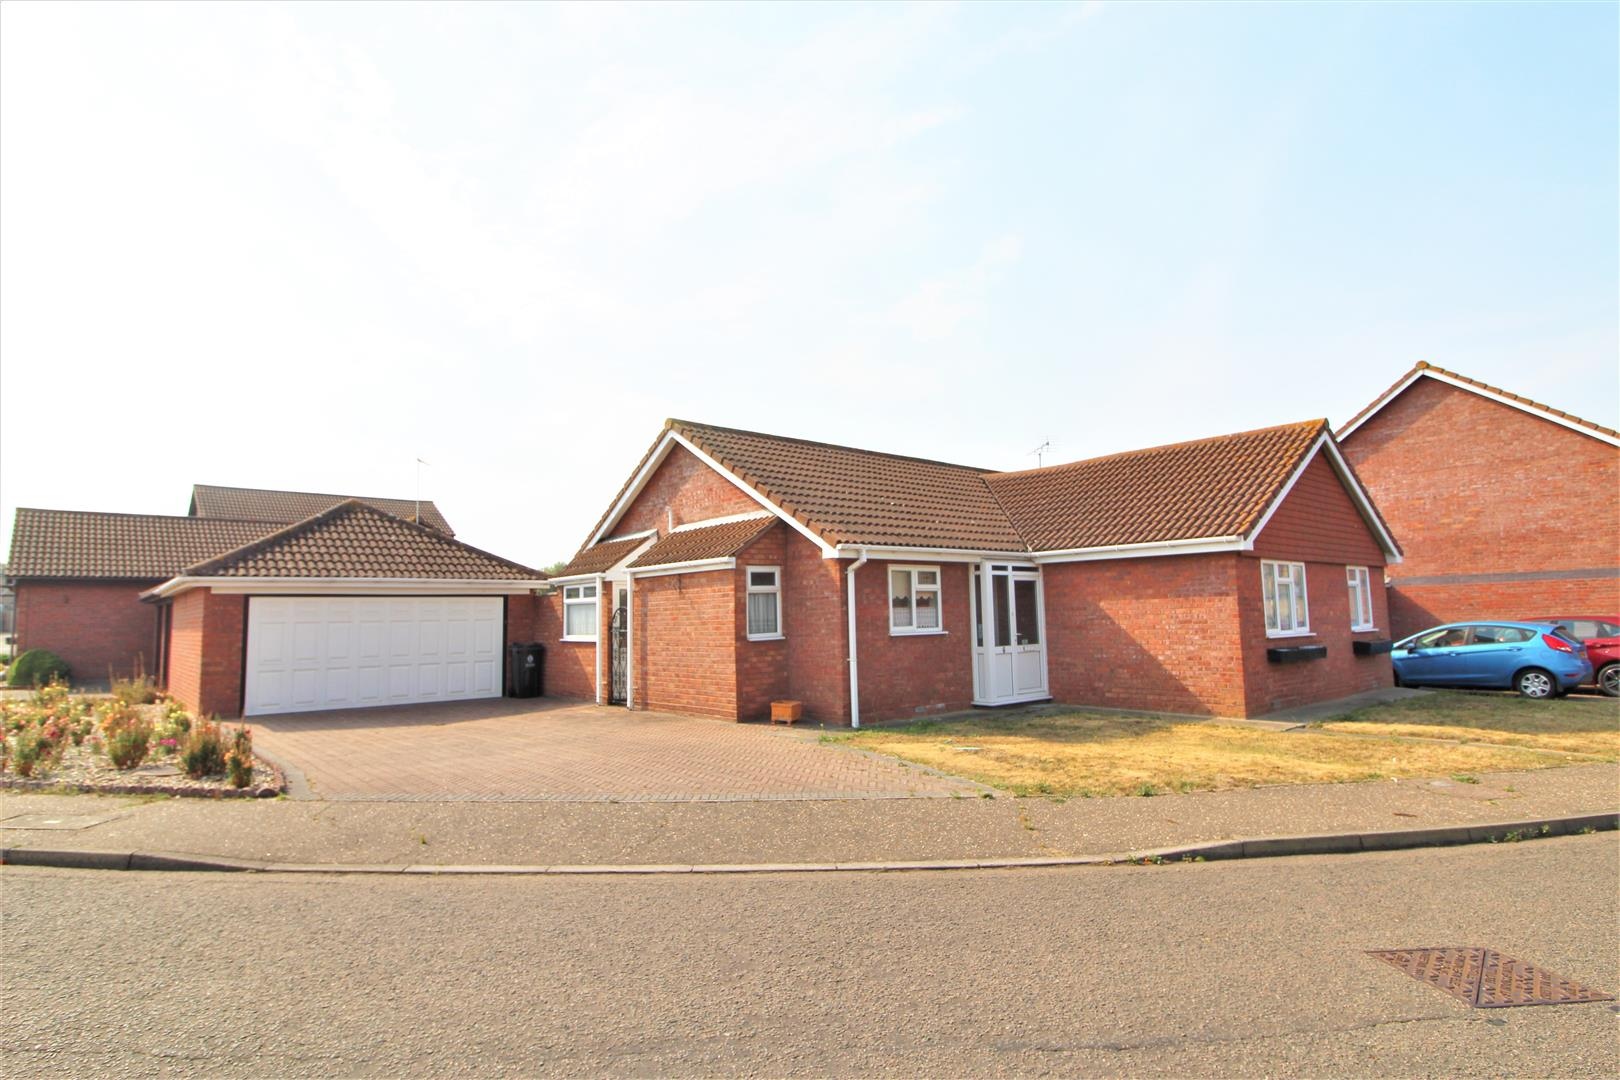 Meadowcroft Way, Frietuna, Essex, CO13 0TF